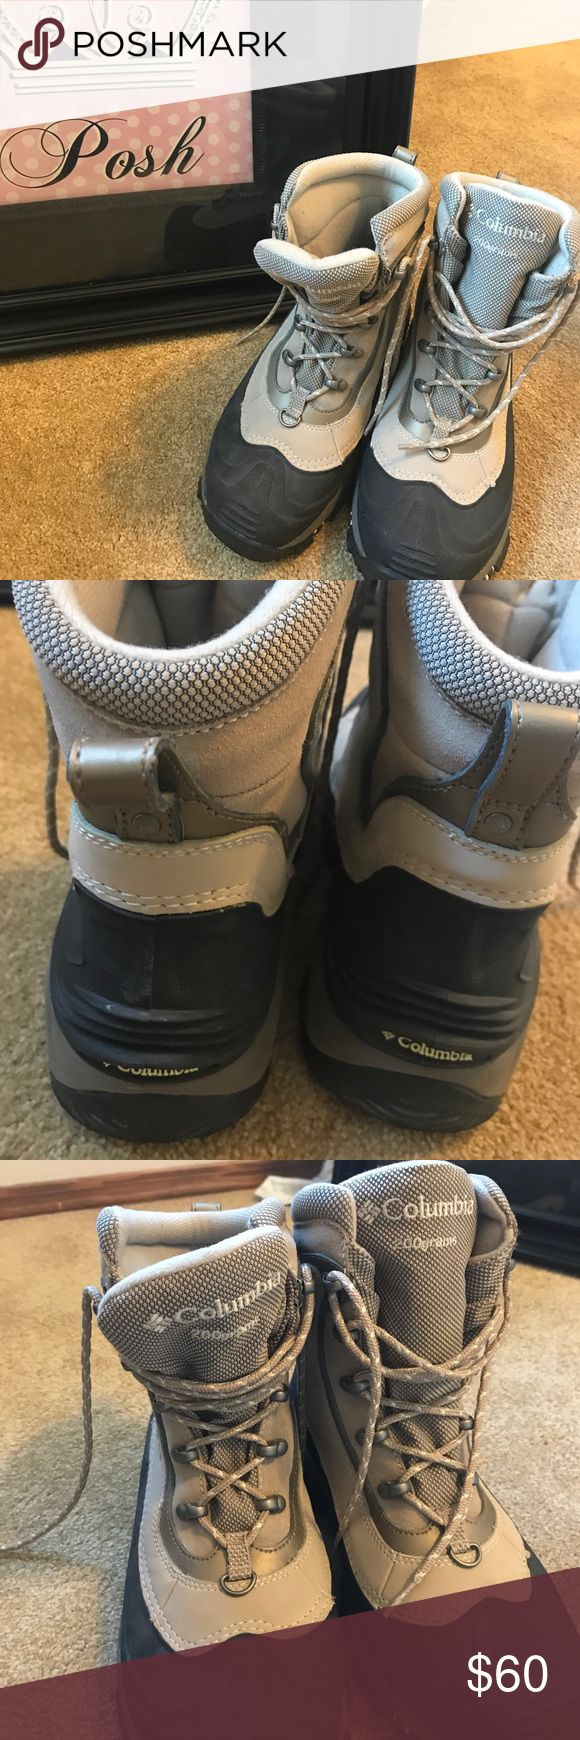 Columbia Women's Winter Boots size 8 This is a pair of Columbia women's boots in a size 8.  They are literally in like new condition.  If you have never worn Columbia boots, you are in for a treat!  They are SO comfy and yet SO warm!! Columbia Shoes Winter & Rain Boots